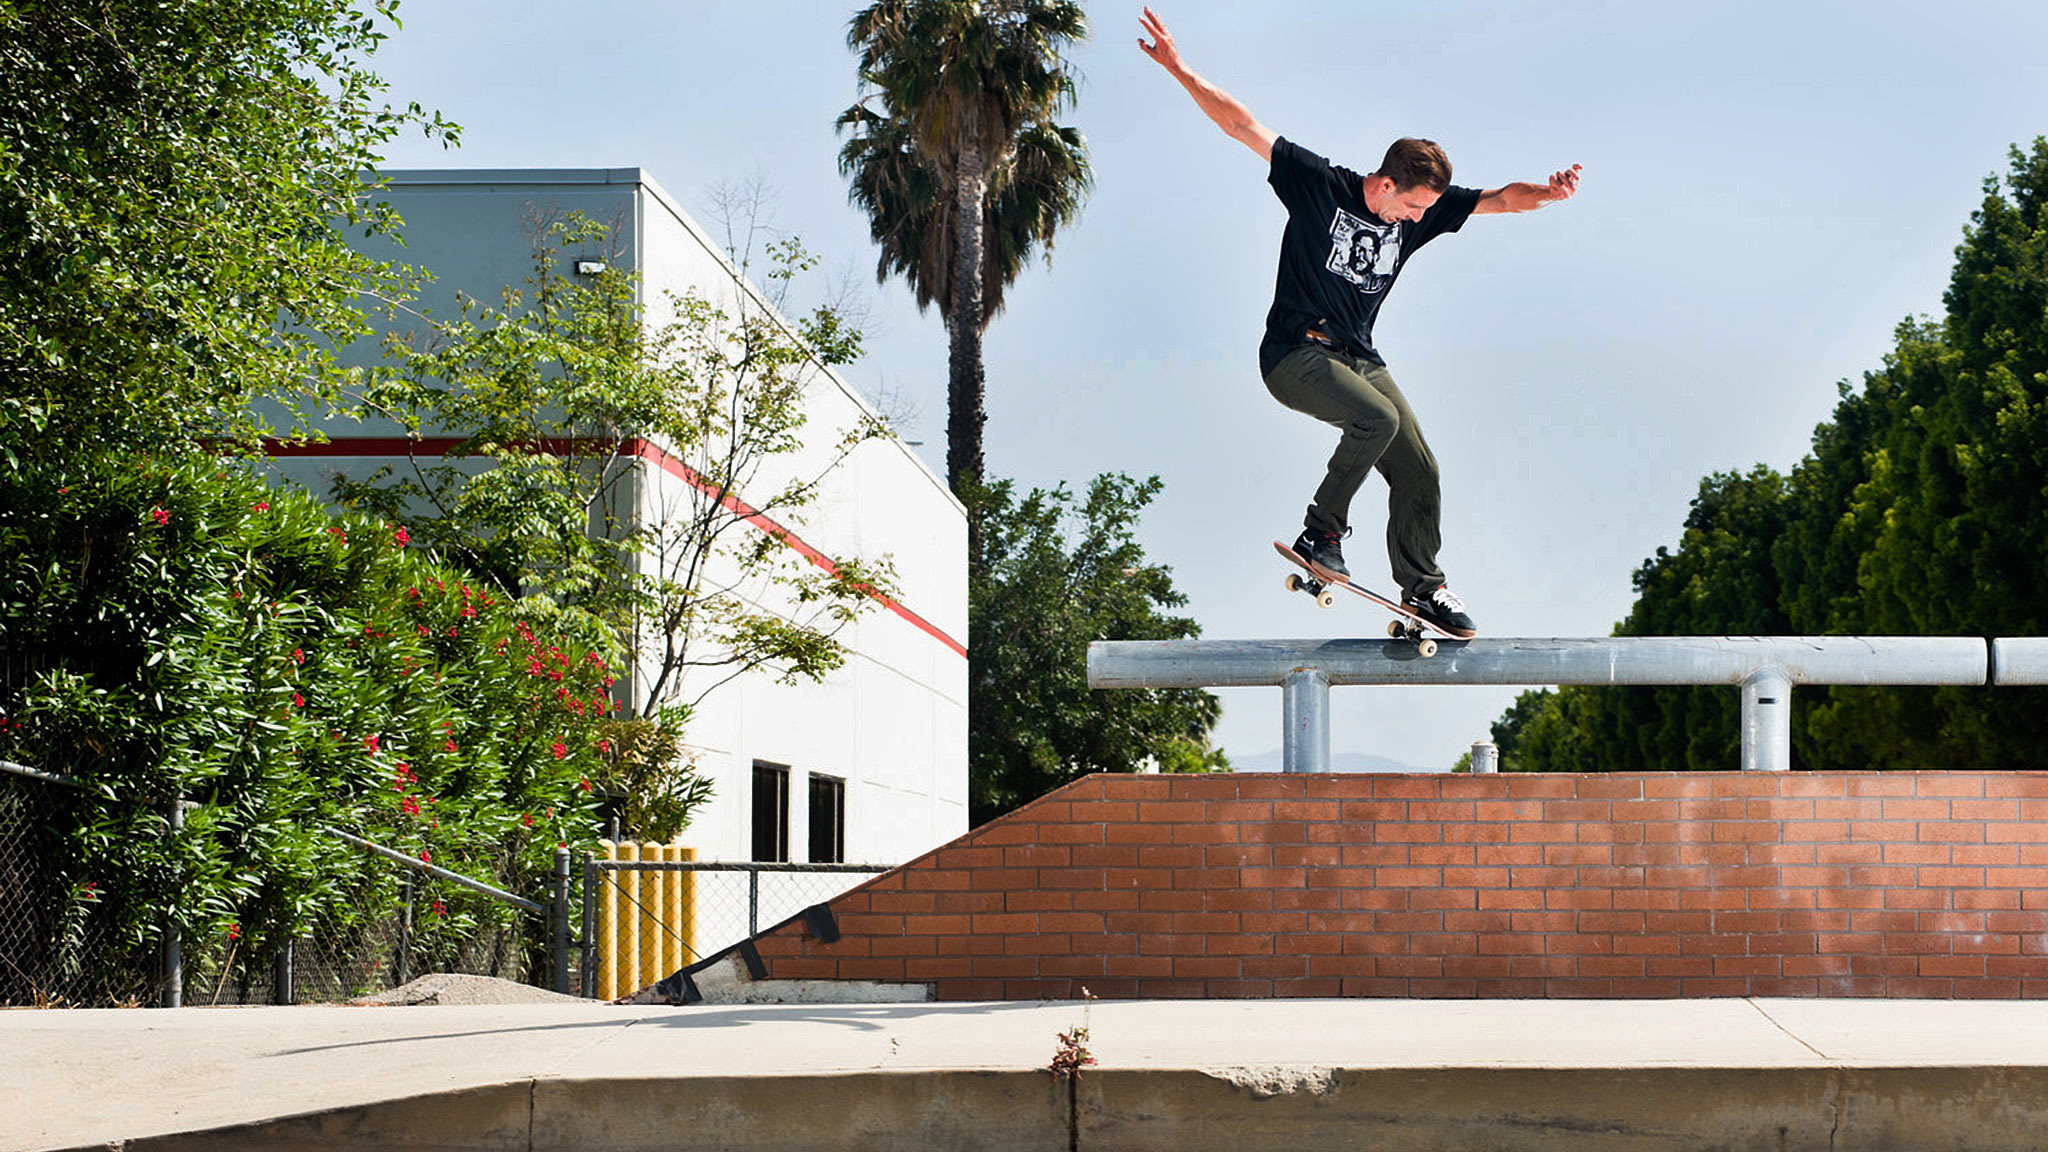 Skateboarder Guy Mariano is as relevant and revered in 2013 as he was 20 years ago.